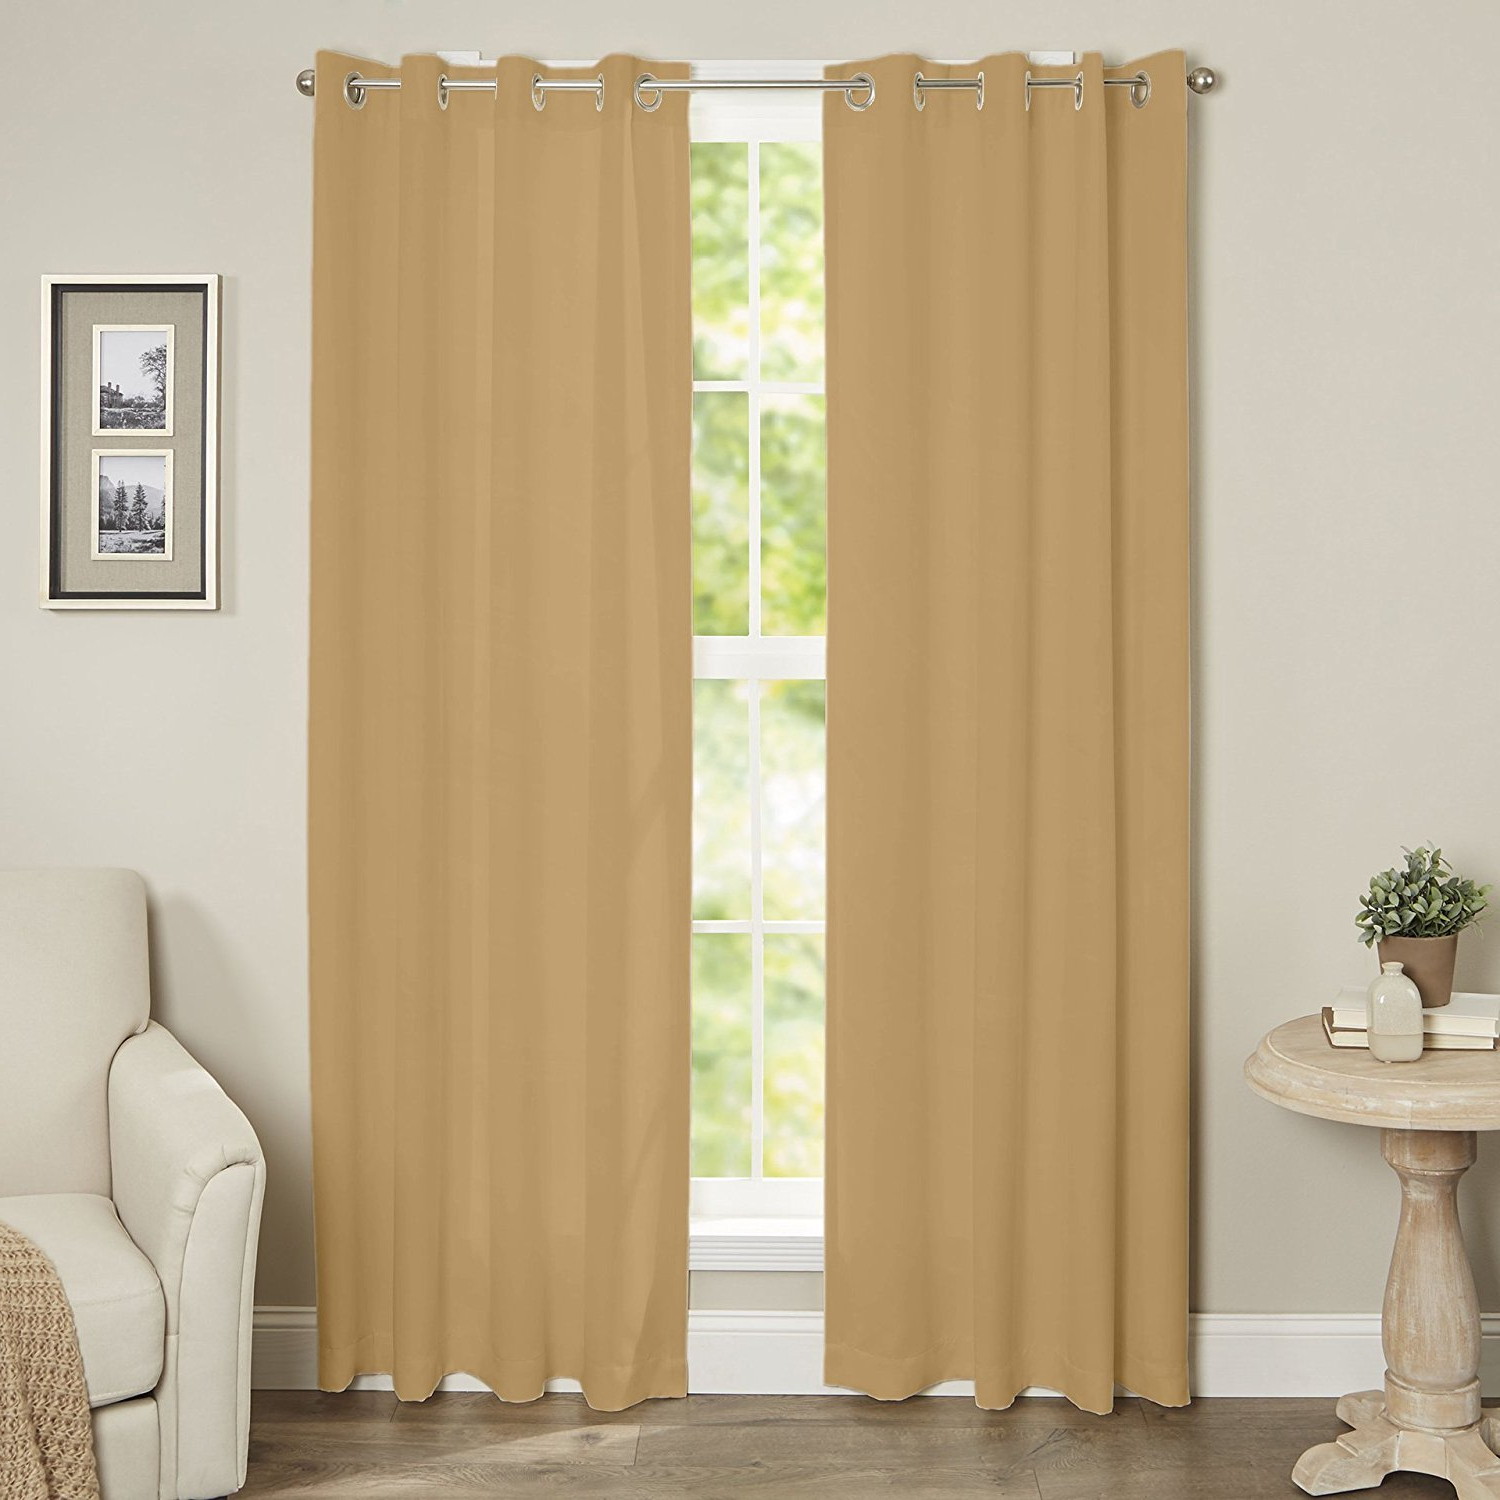 Most Current Luxury Collection Faux Leather Blackout Single Curtain Panels Regarding Amazon: E&a Linen Corp (View 10 of 20)